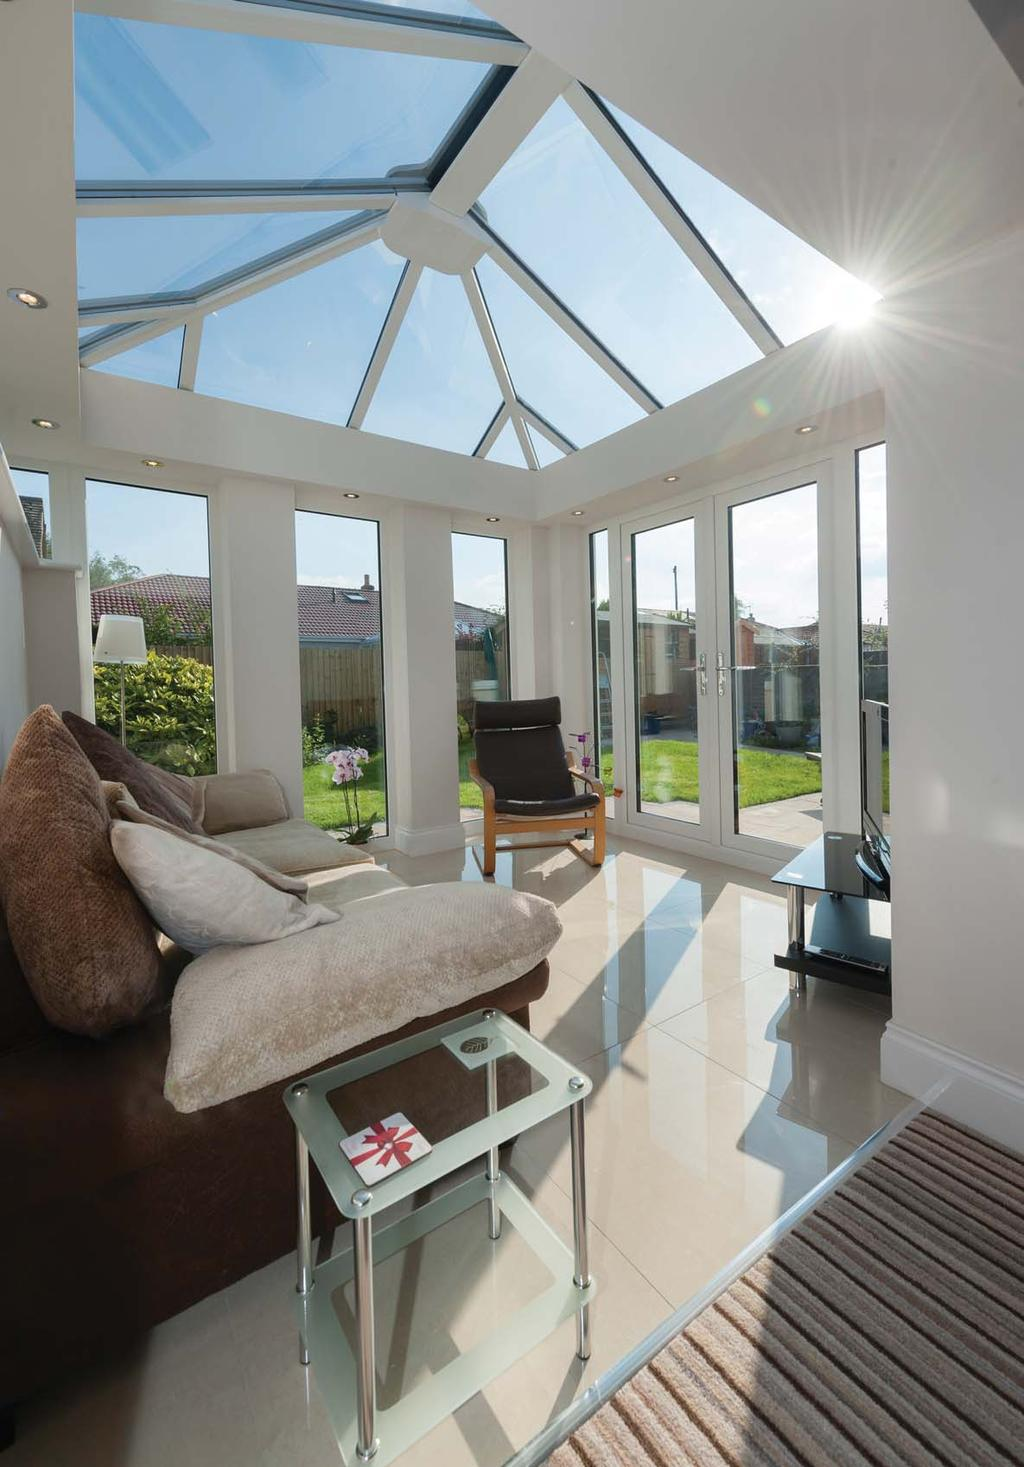 If you are looking to add more style to your lifestyle, nothing comes close to the Premium by Ultraframe.